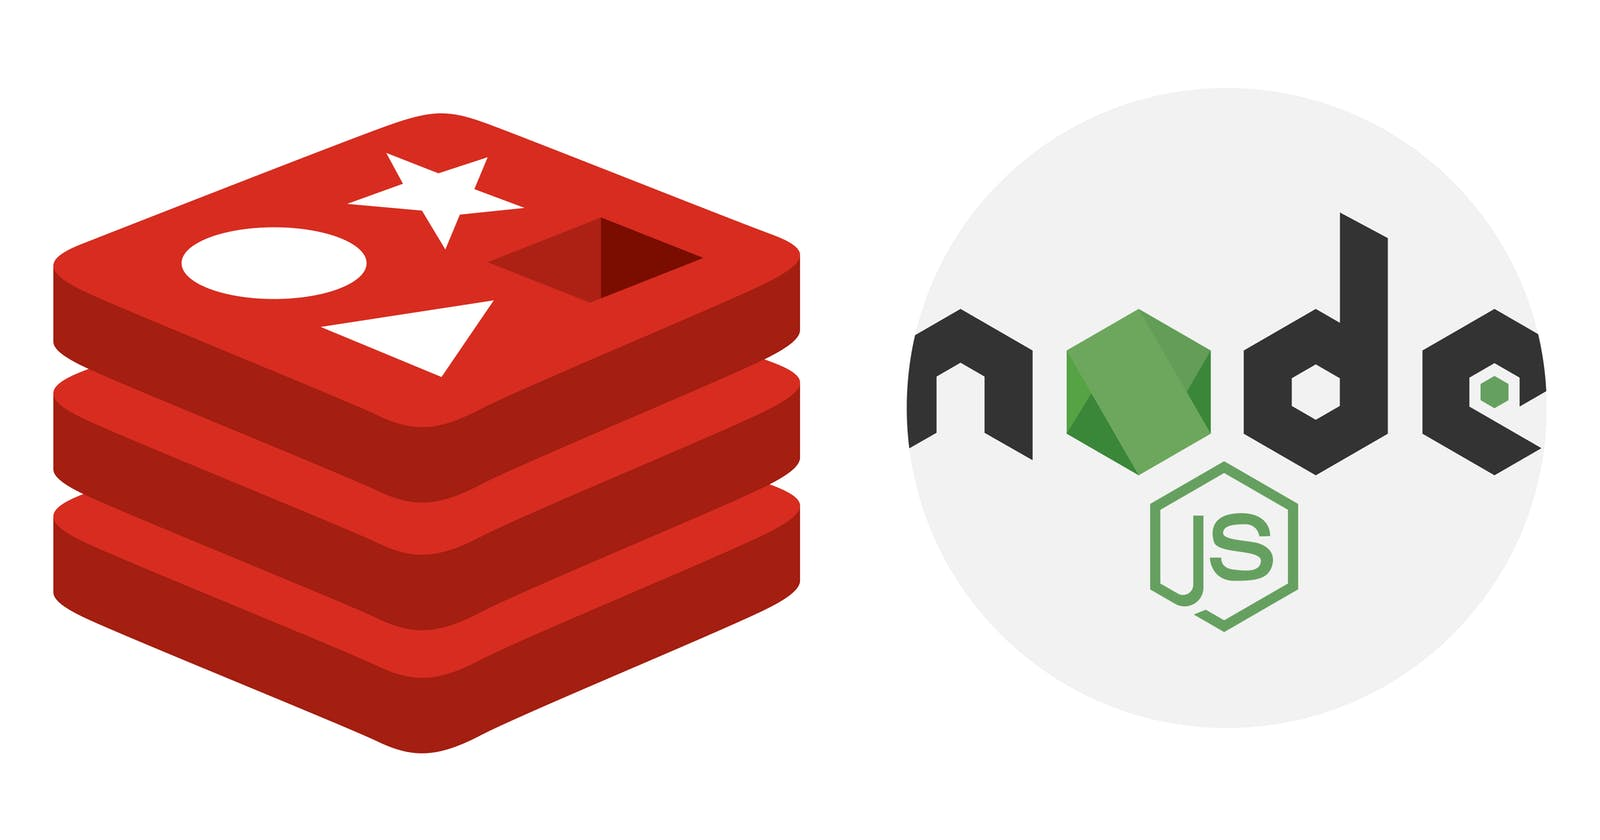 How to use Redis with Express